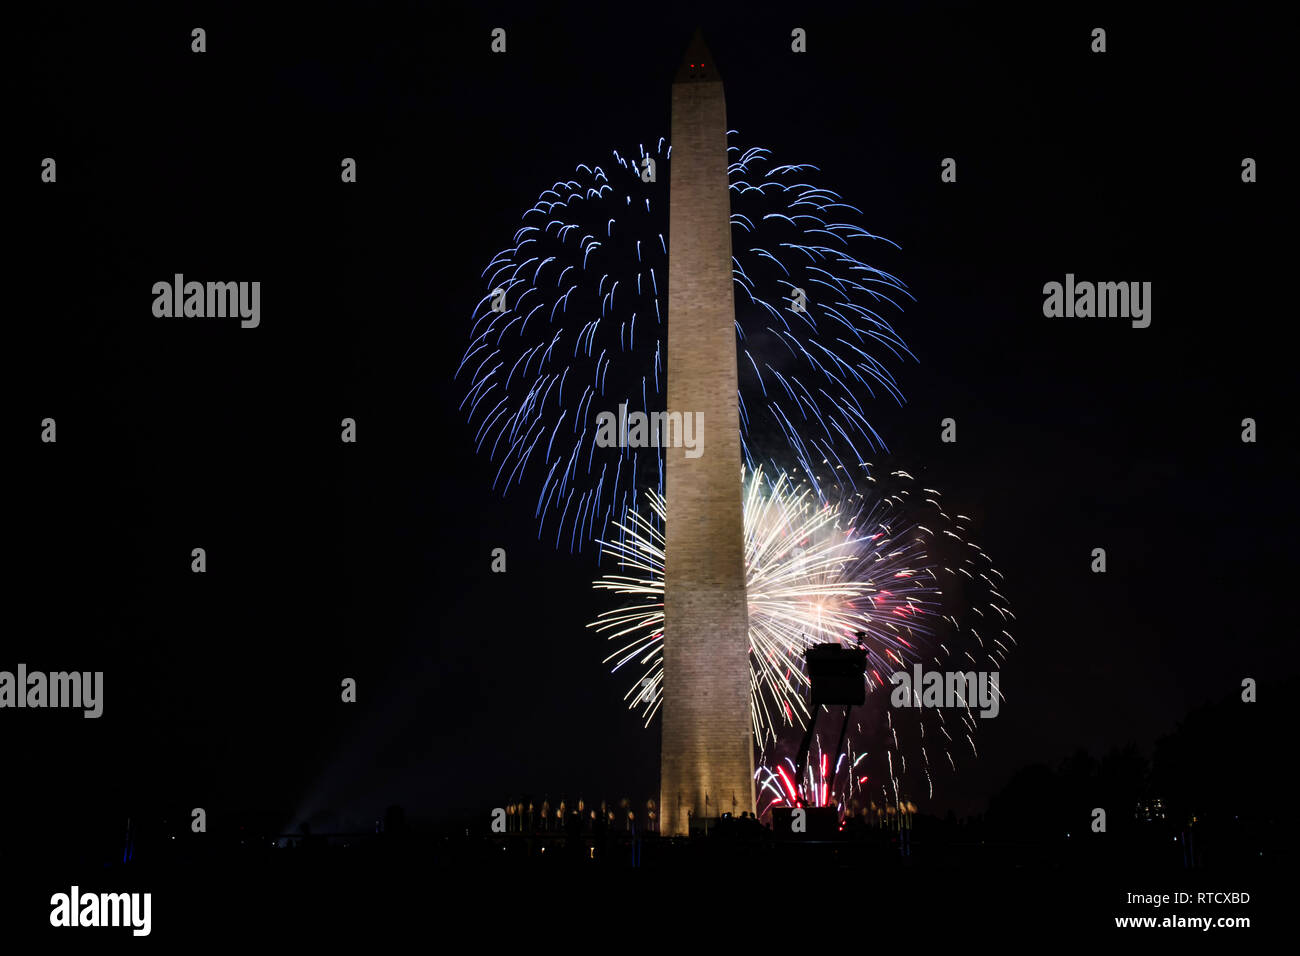 Washington DC, USA - 4 juillet 2017 : rouge, blanc et bleu ciel derrière le feu d'artifice le Washington Monument, sur le Mall à Washington DC Banque D'Images